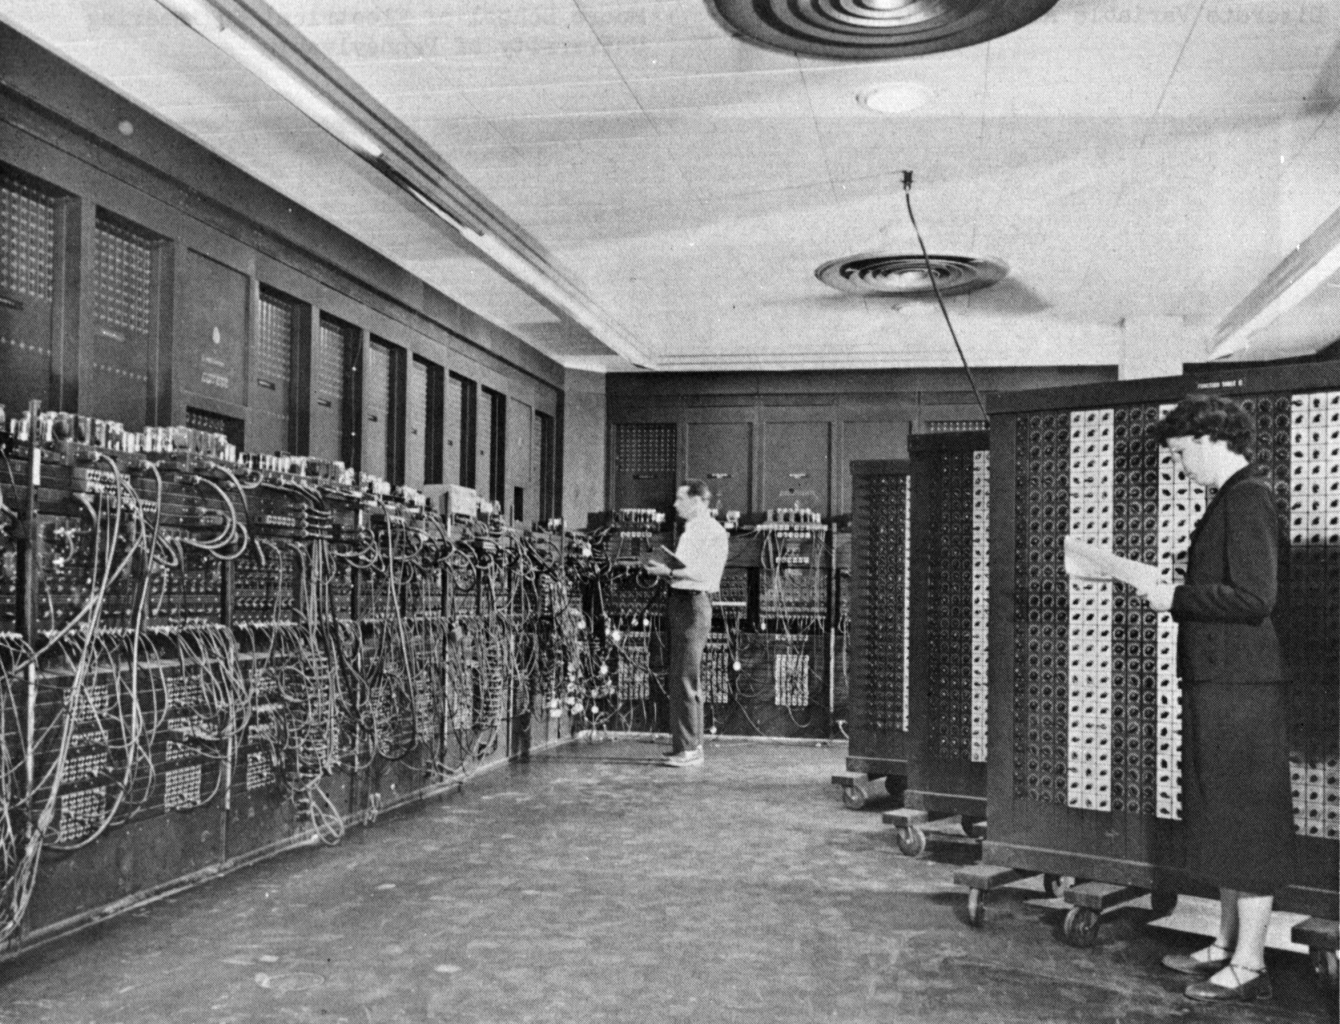 An Old U.S. Army Photo of the ENIAC